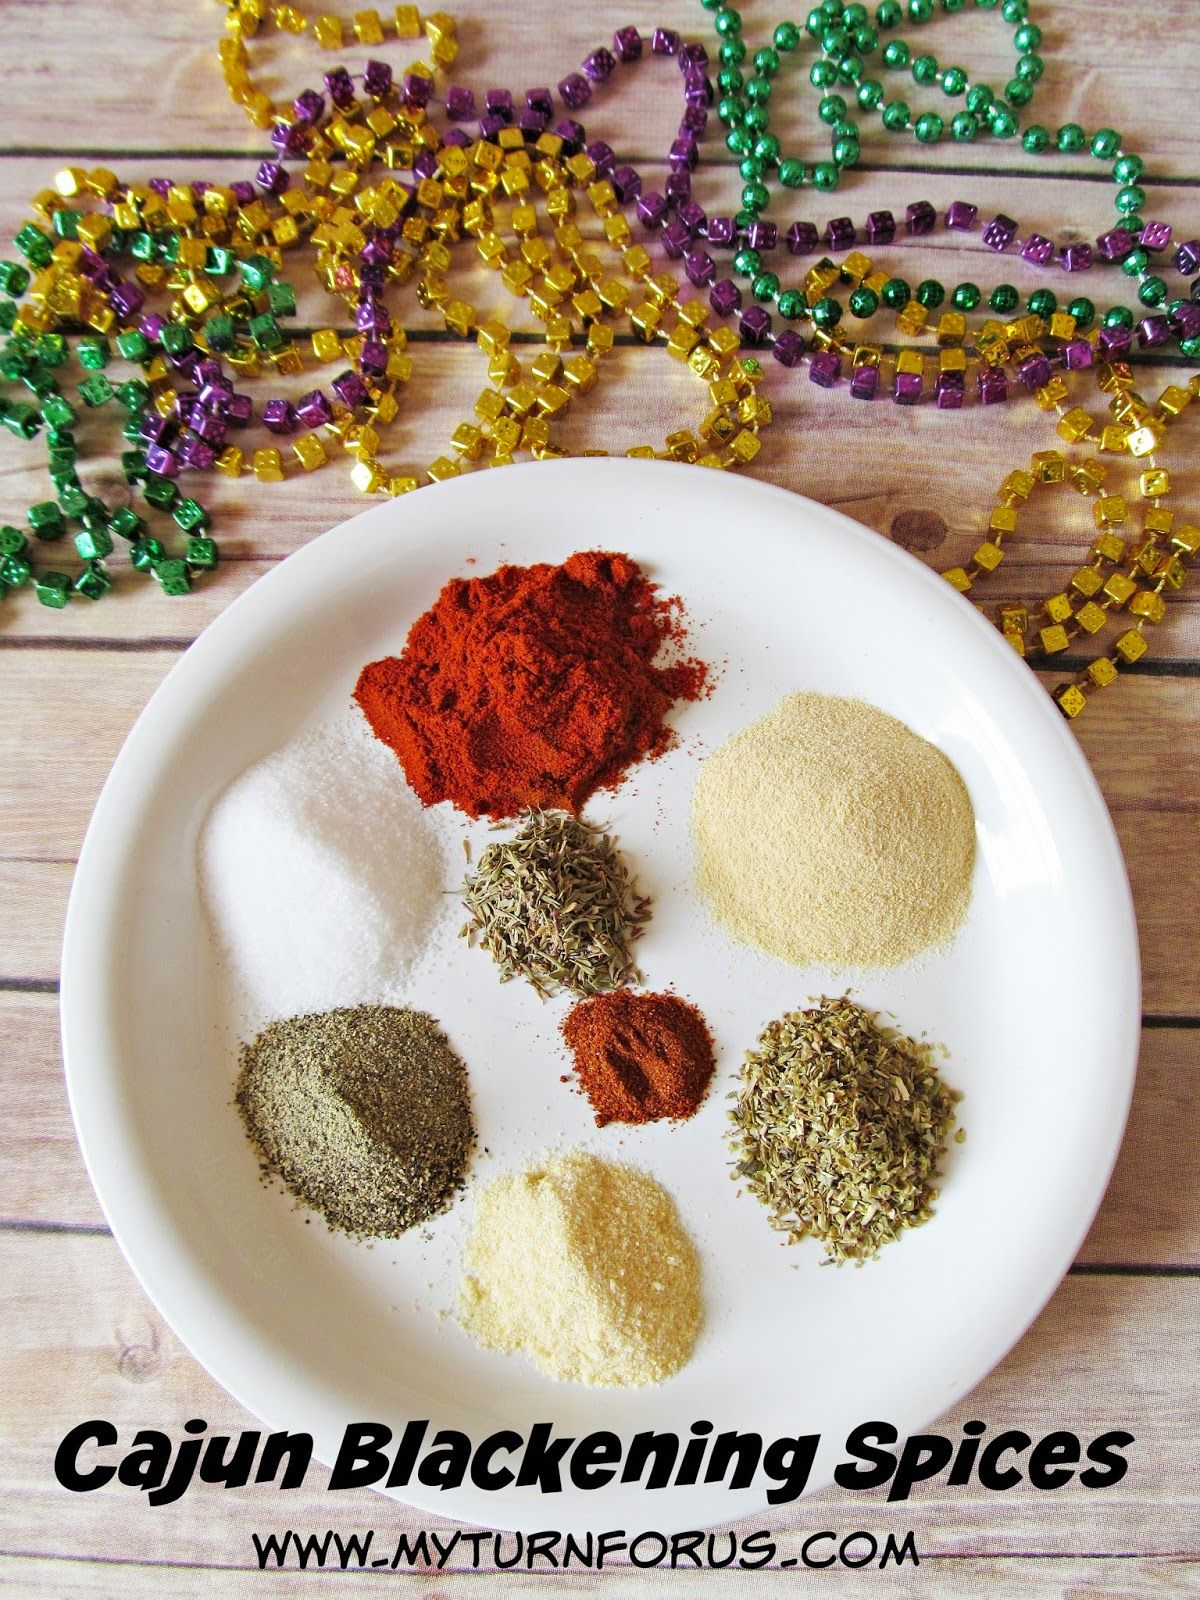 Cajun Blackening Spices are made from ingredients already in your spice cabinet. Mardi Gras Recipe.  Homemade Spice Recipe